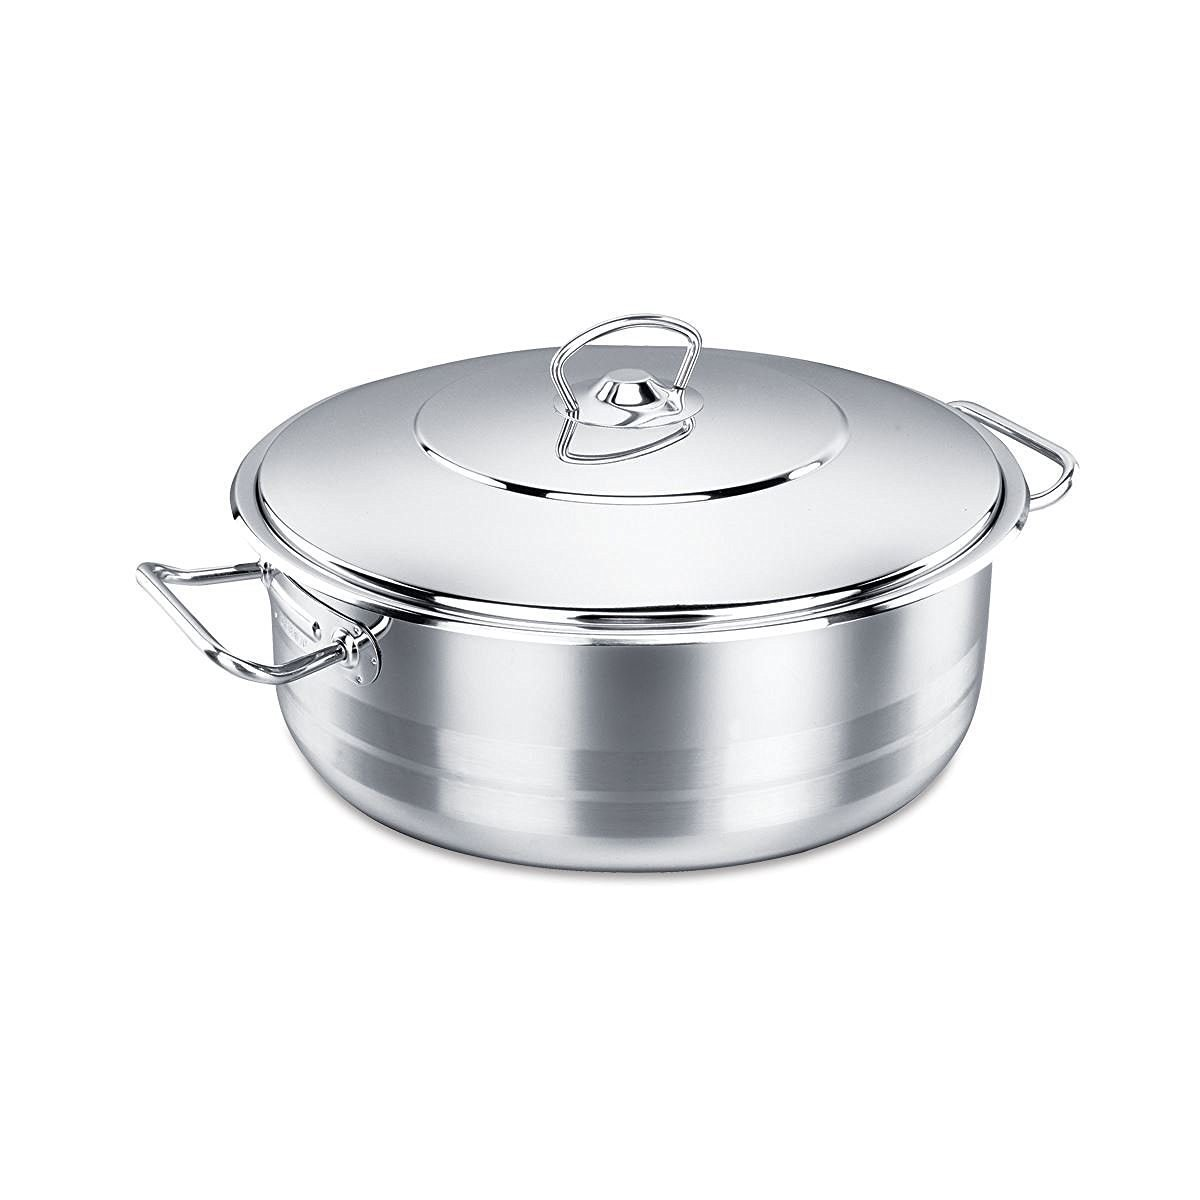 YBM Home Korkmaz Mega Dutch Oven, NULL